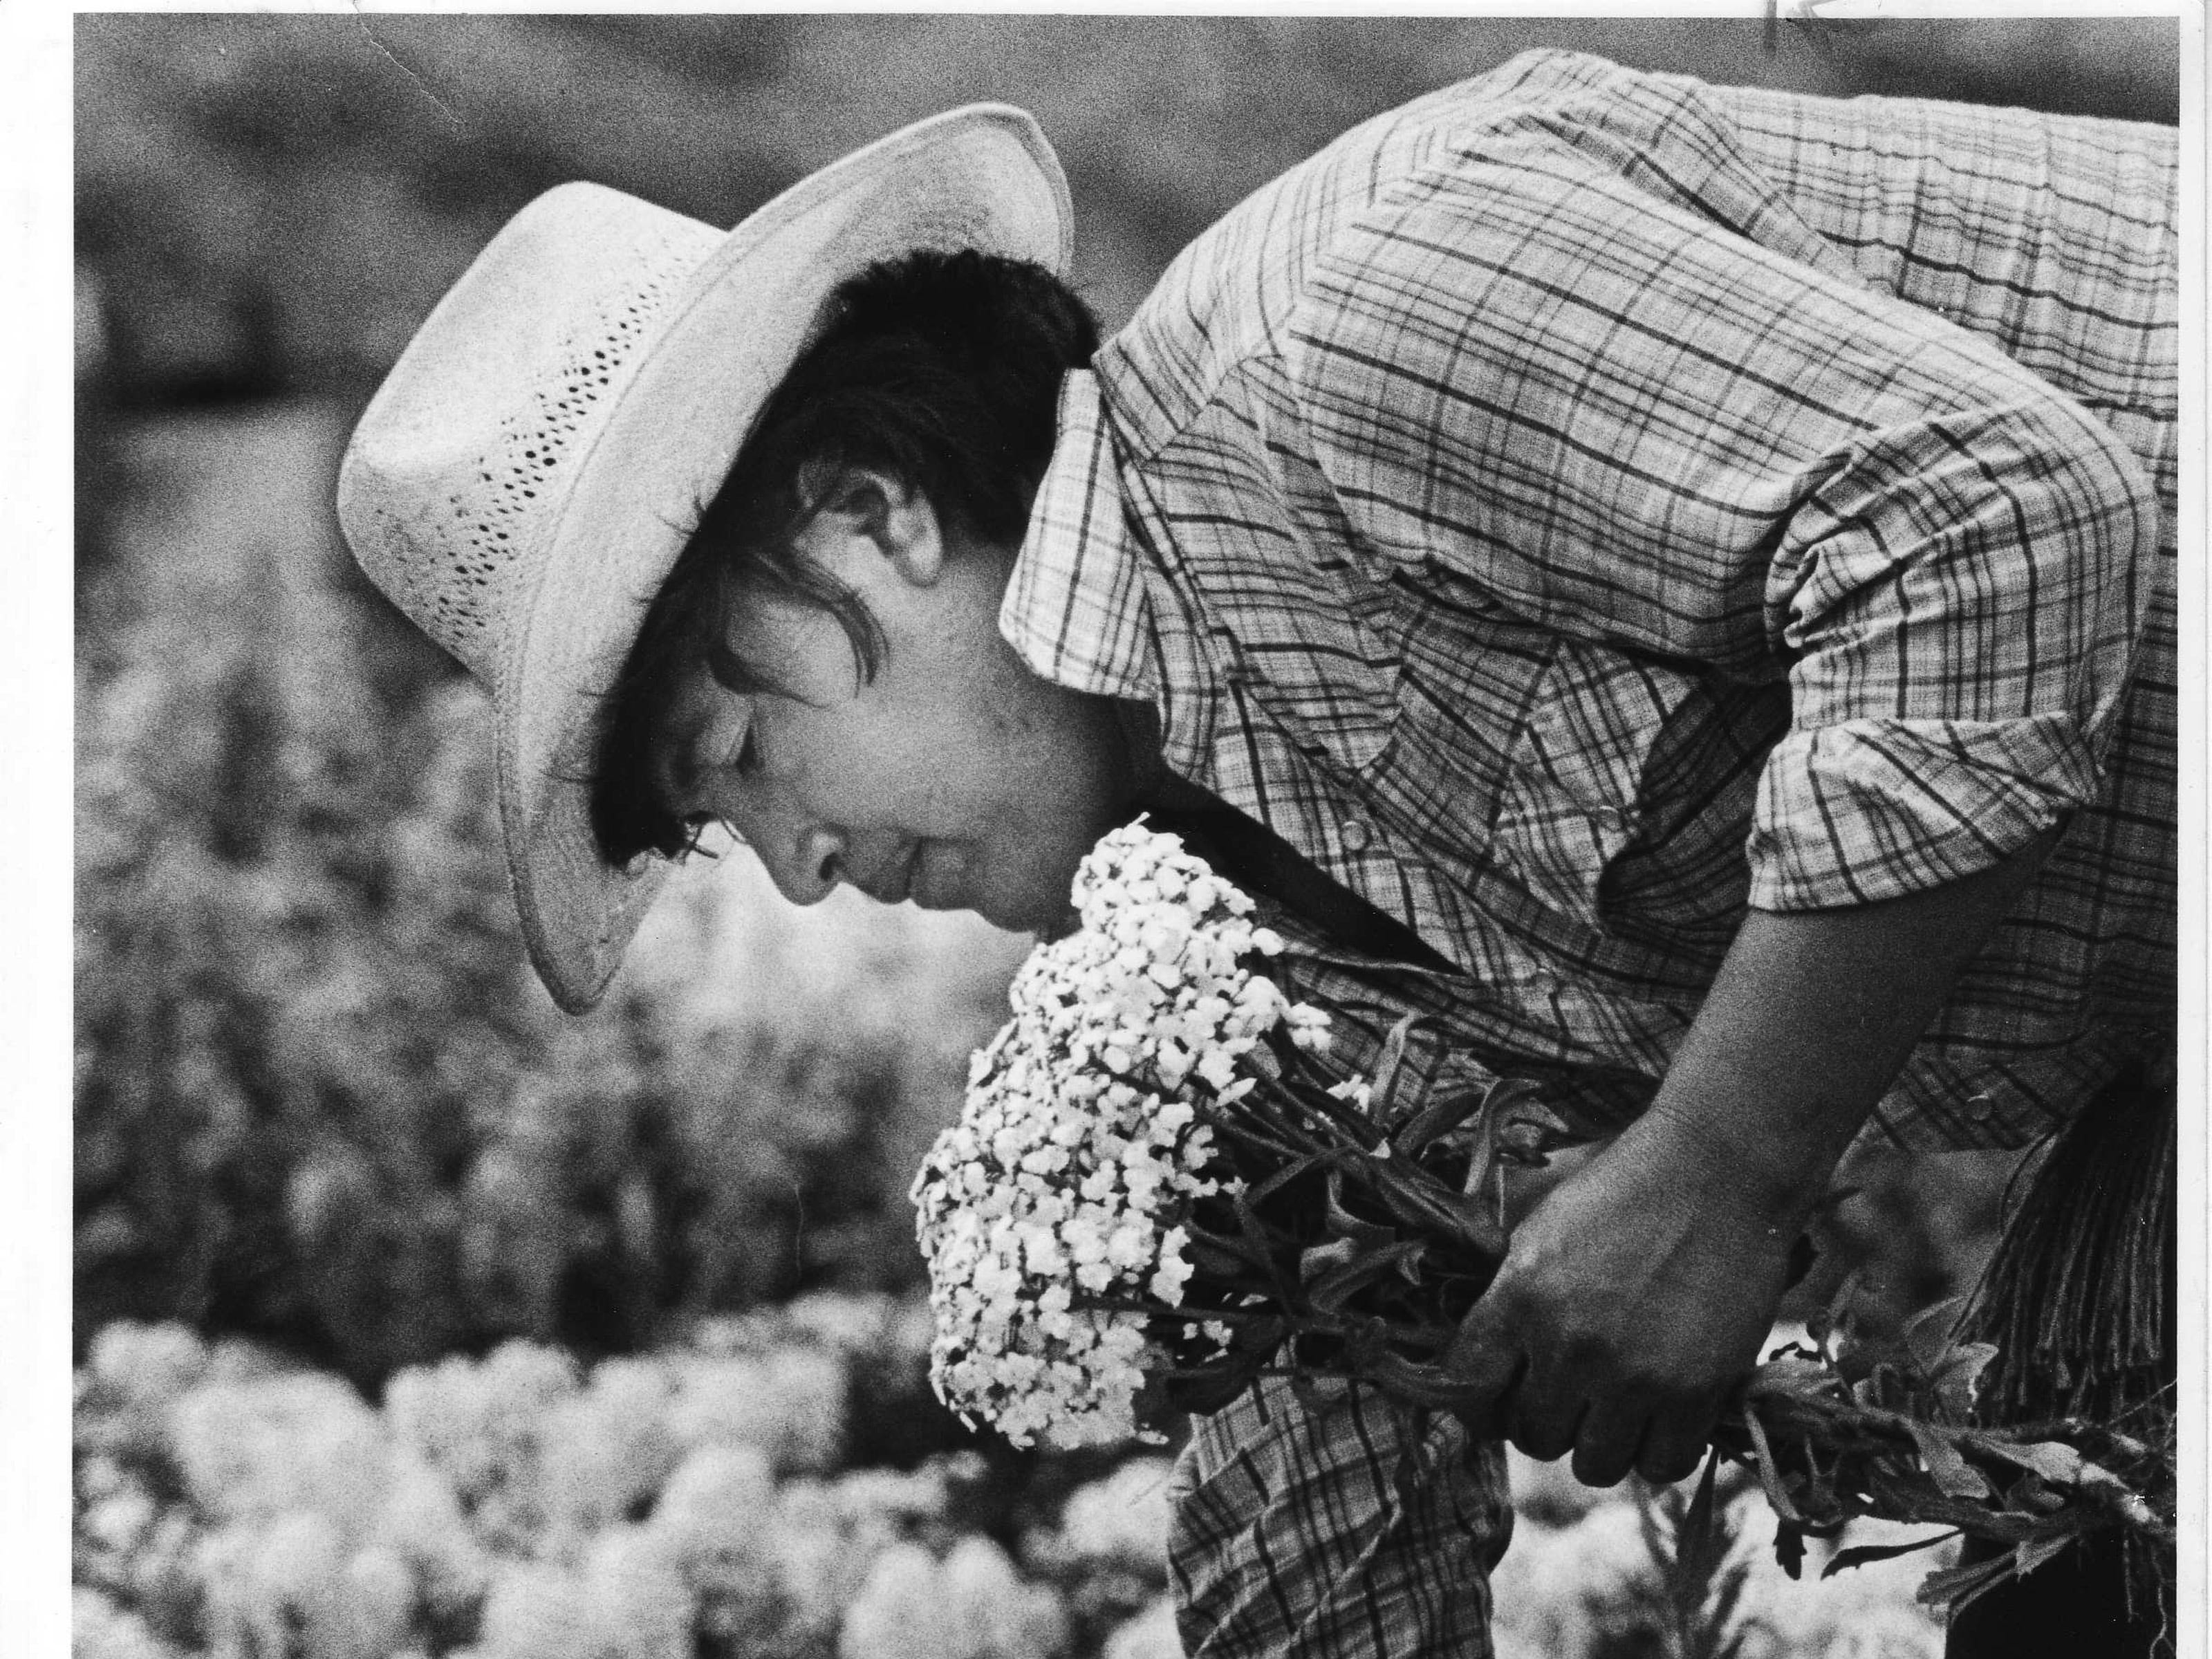 A man works in a Japanese flower garden along Baseline Road in Phoenix in 1982.